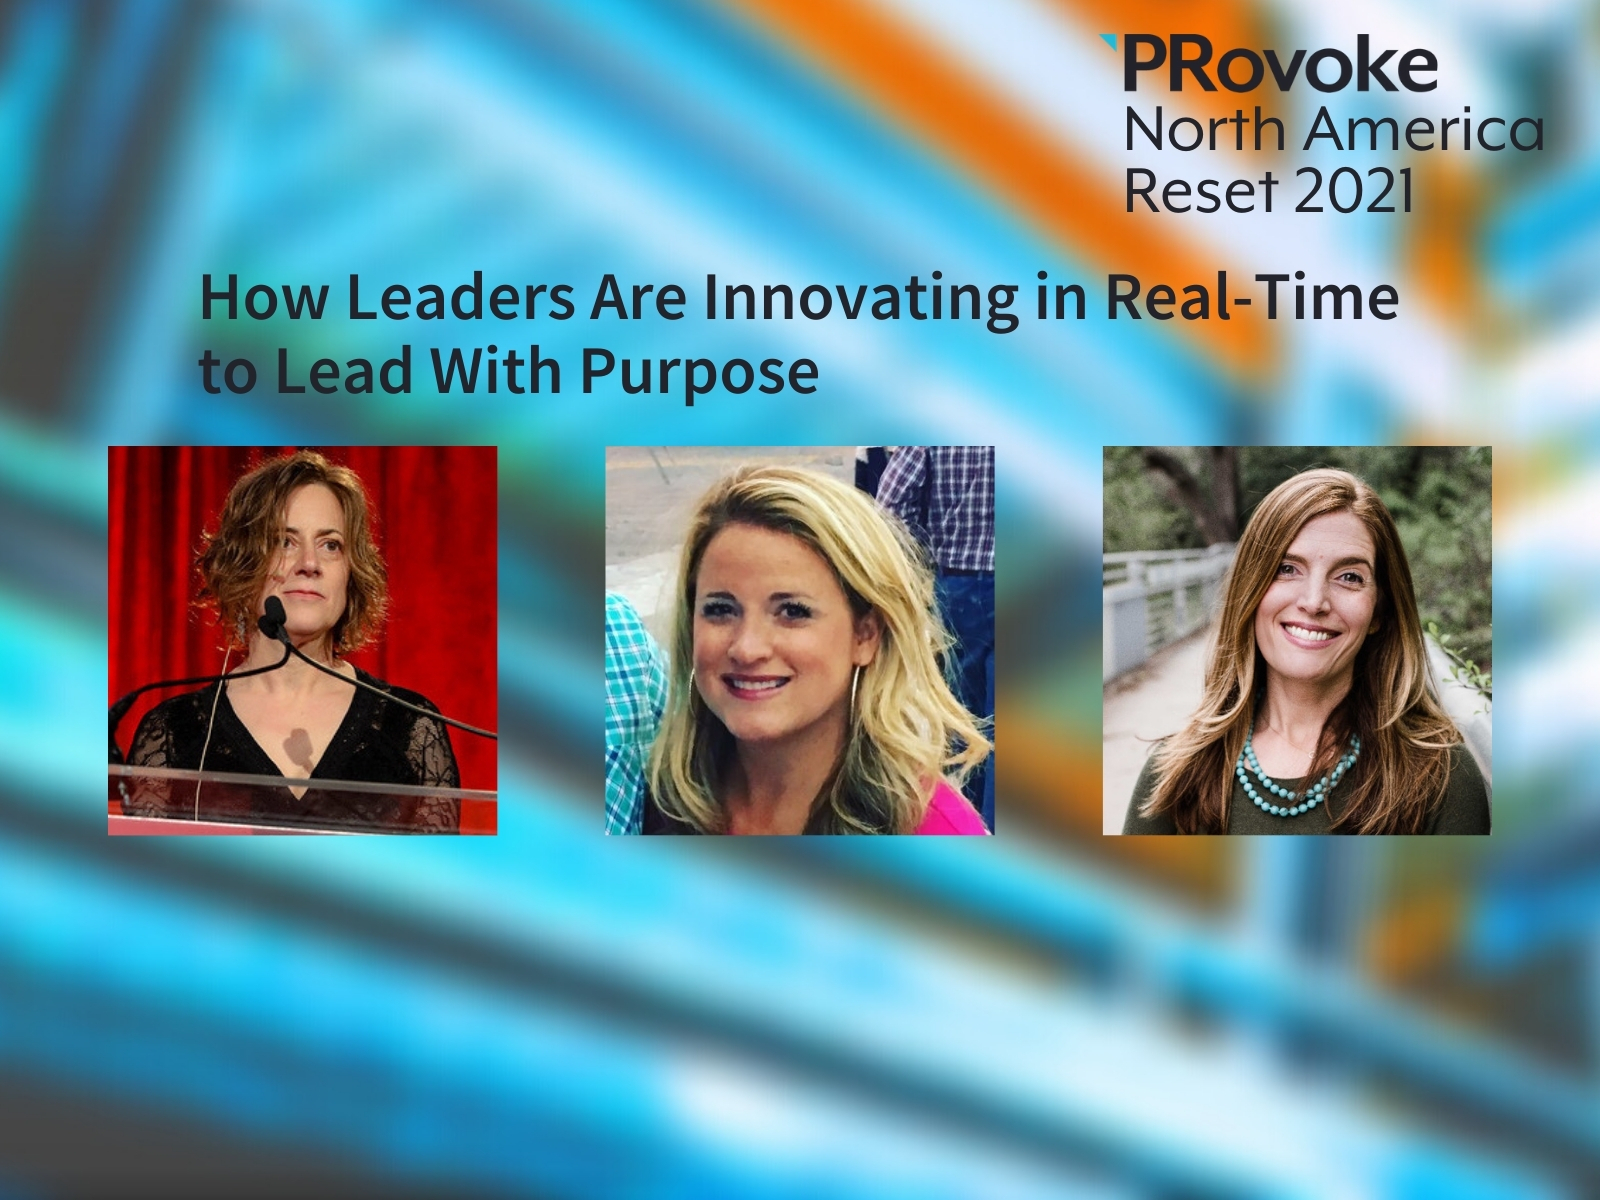 PRovoke North America To Address How Leaders Can Innovate In Real-Time